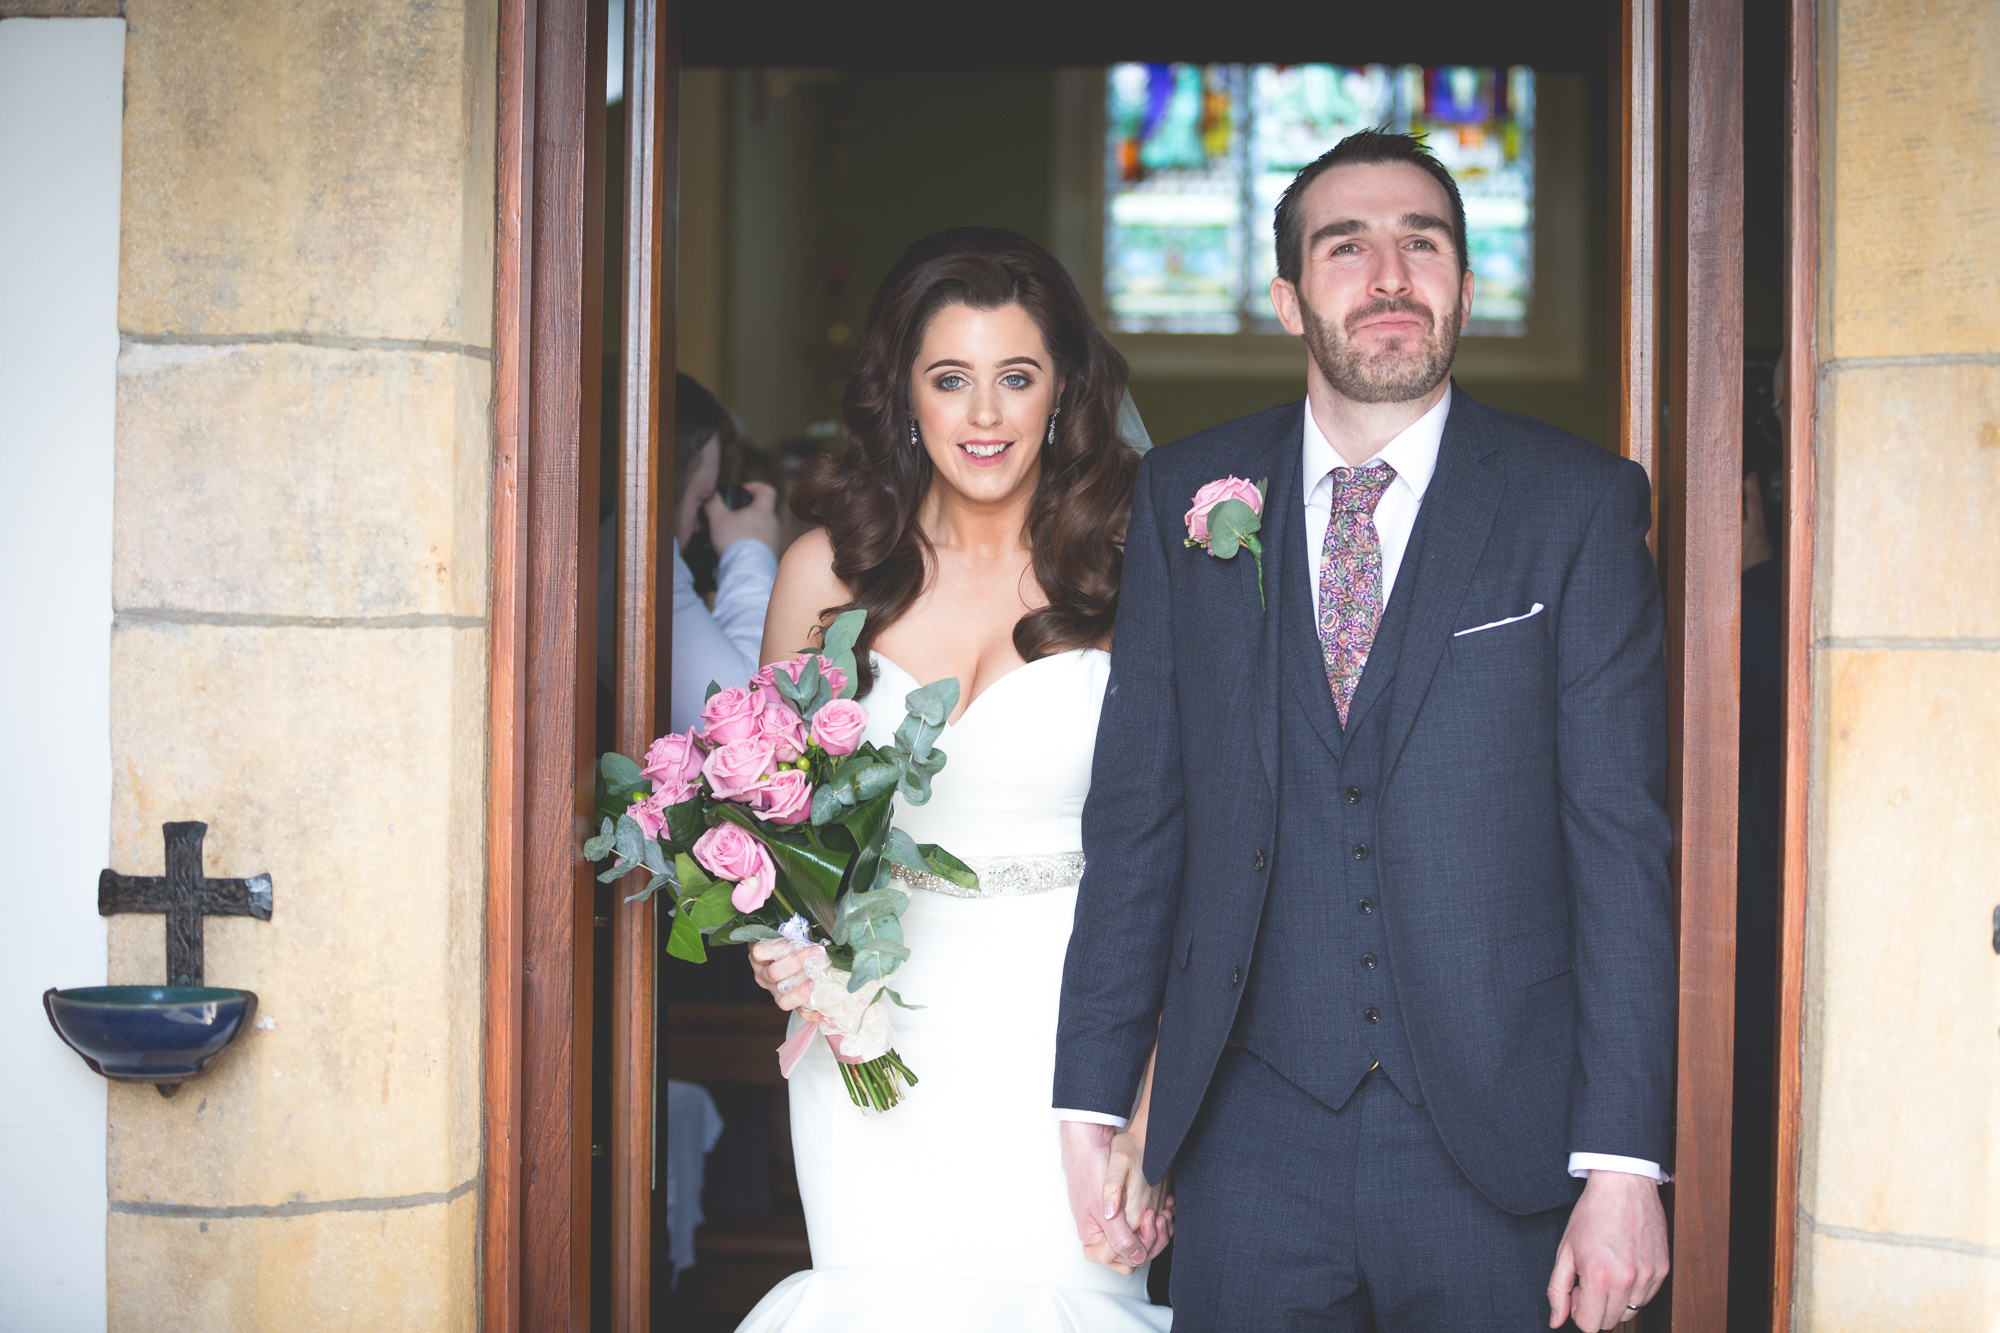 Francis&Oonagh-Ceremony-109.jpg